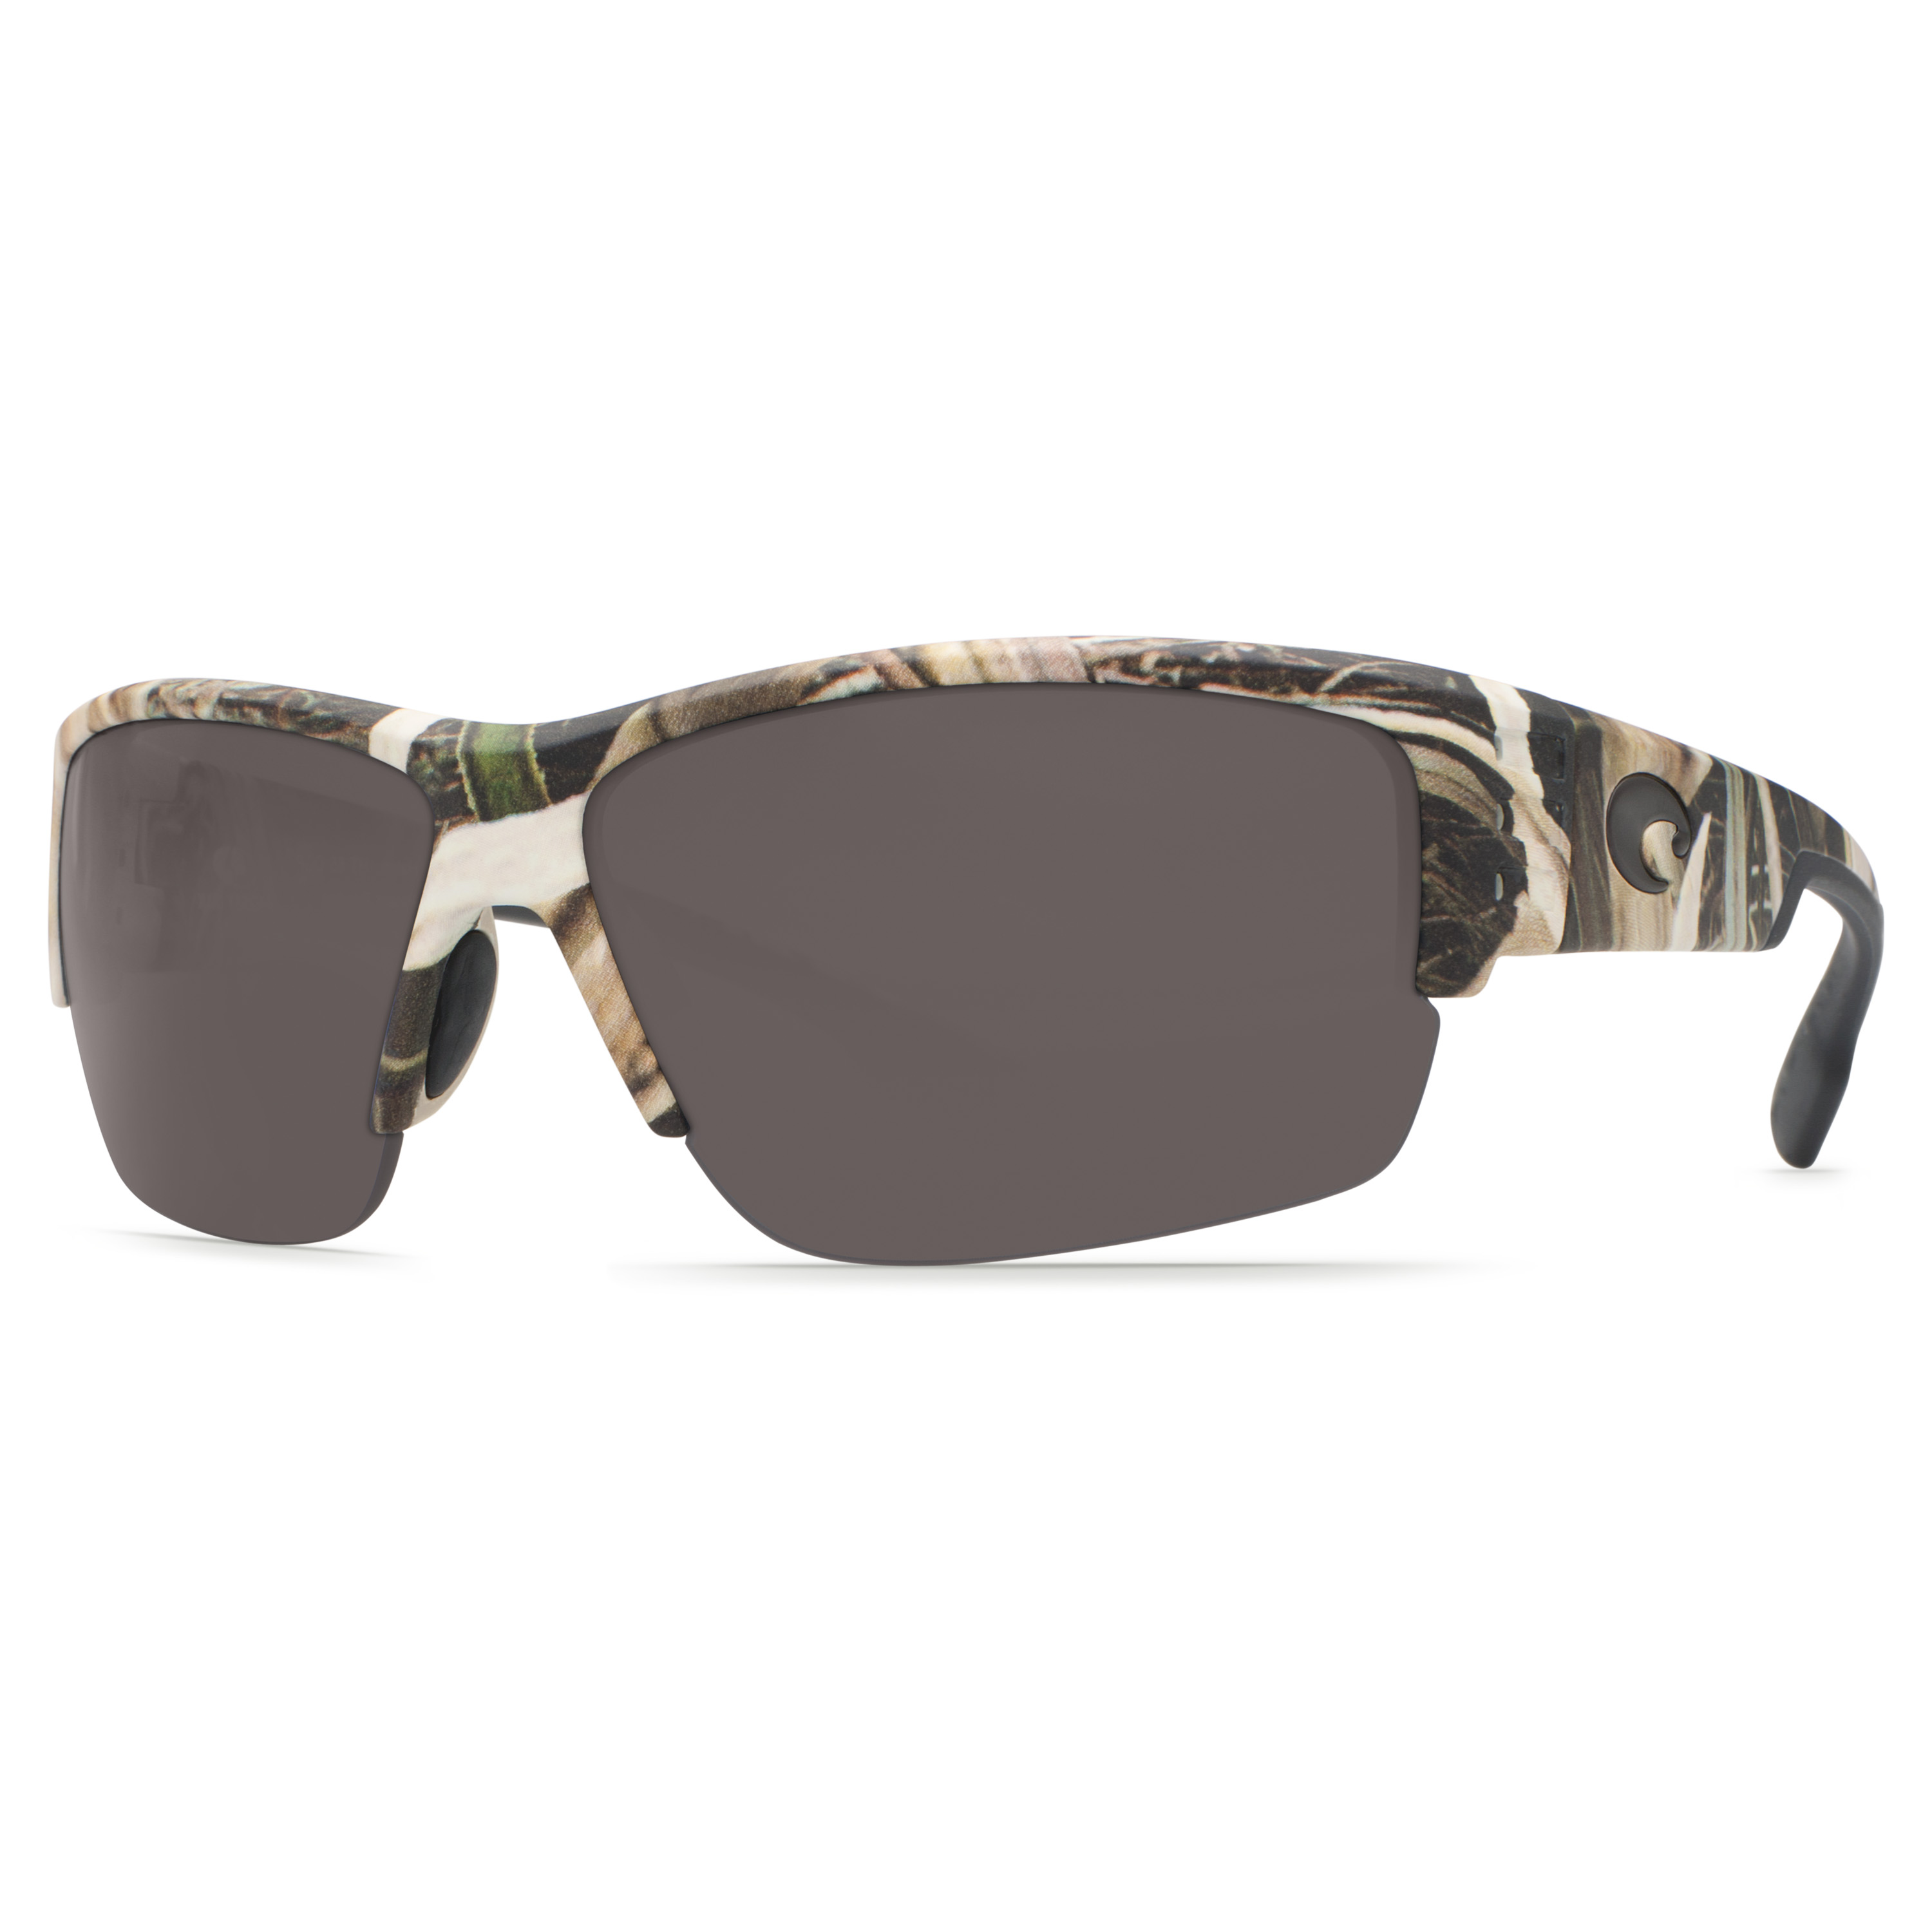 2affe41e10 Costa Expands Camouflage Line With New Mossy Oak Shadow Grass Blades  Sunglasses